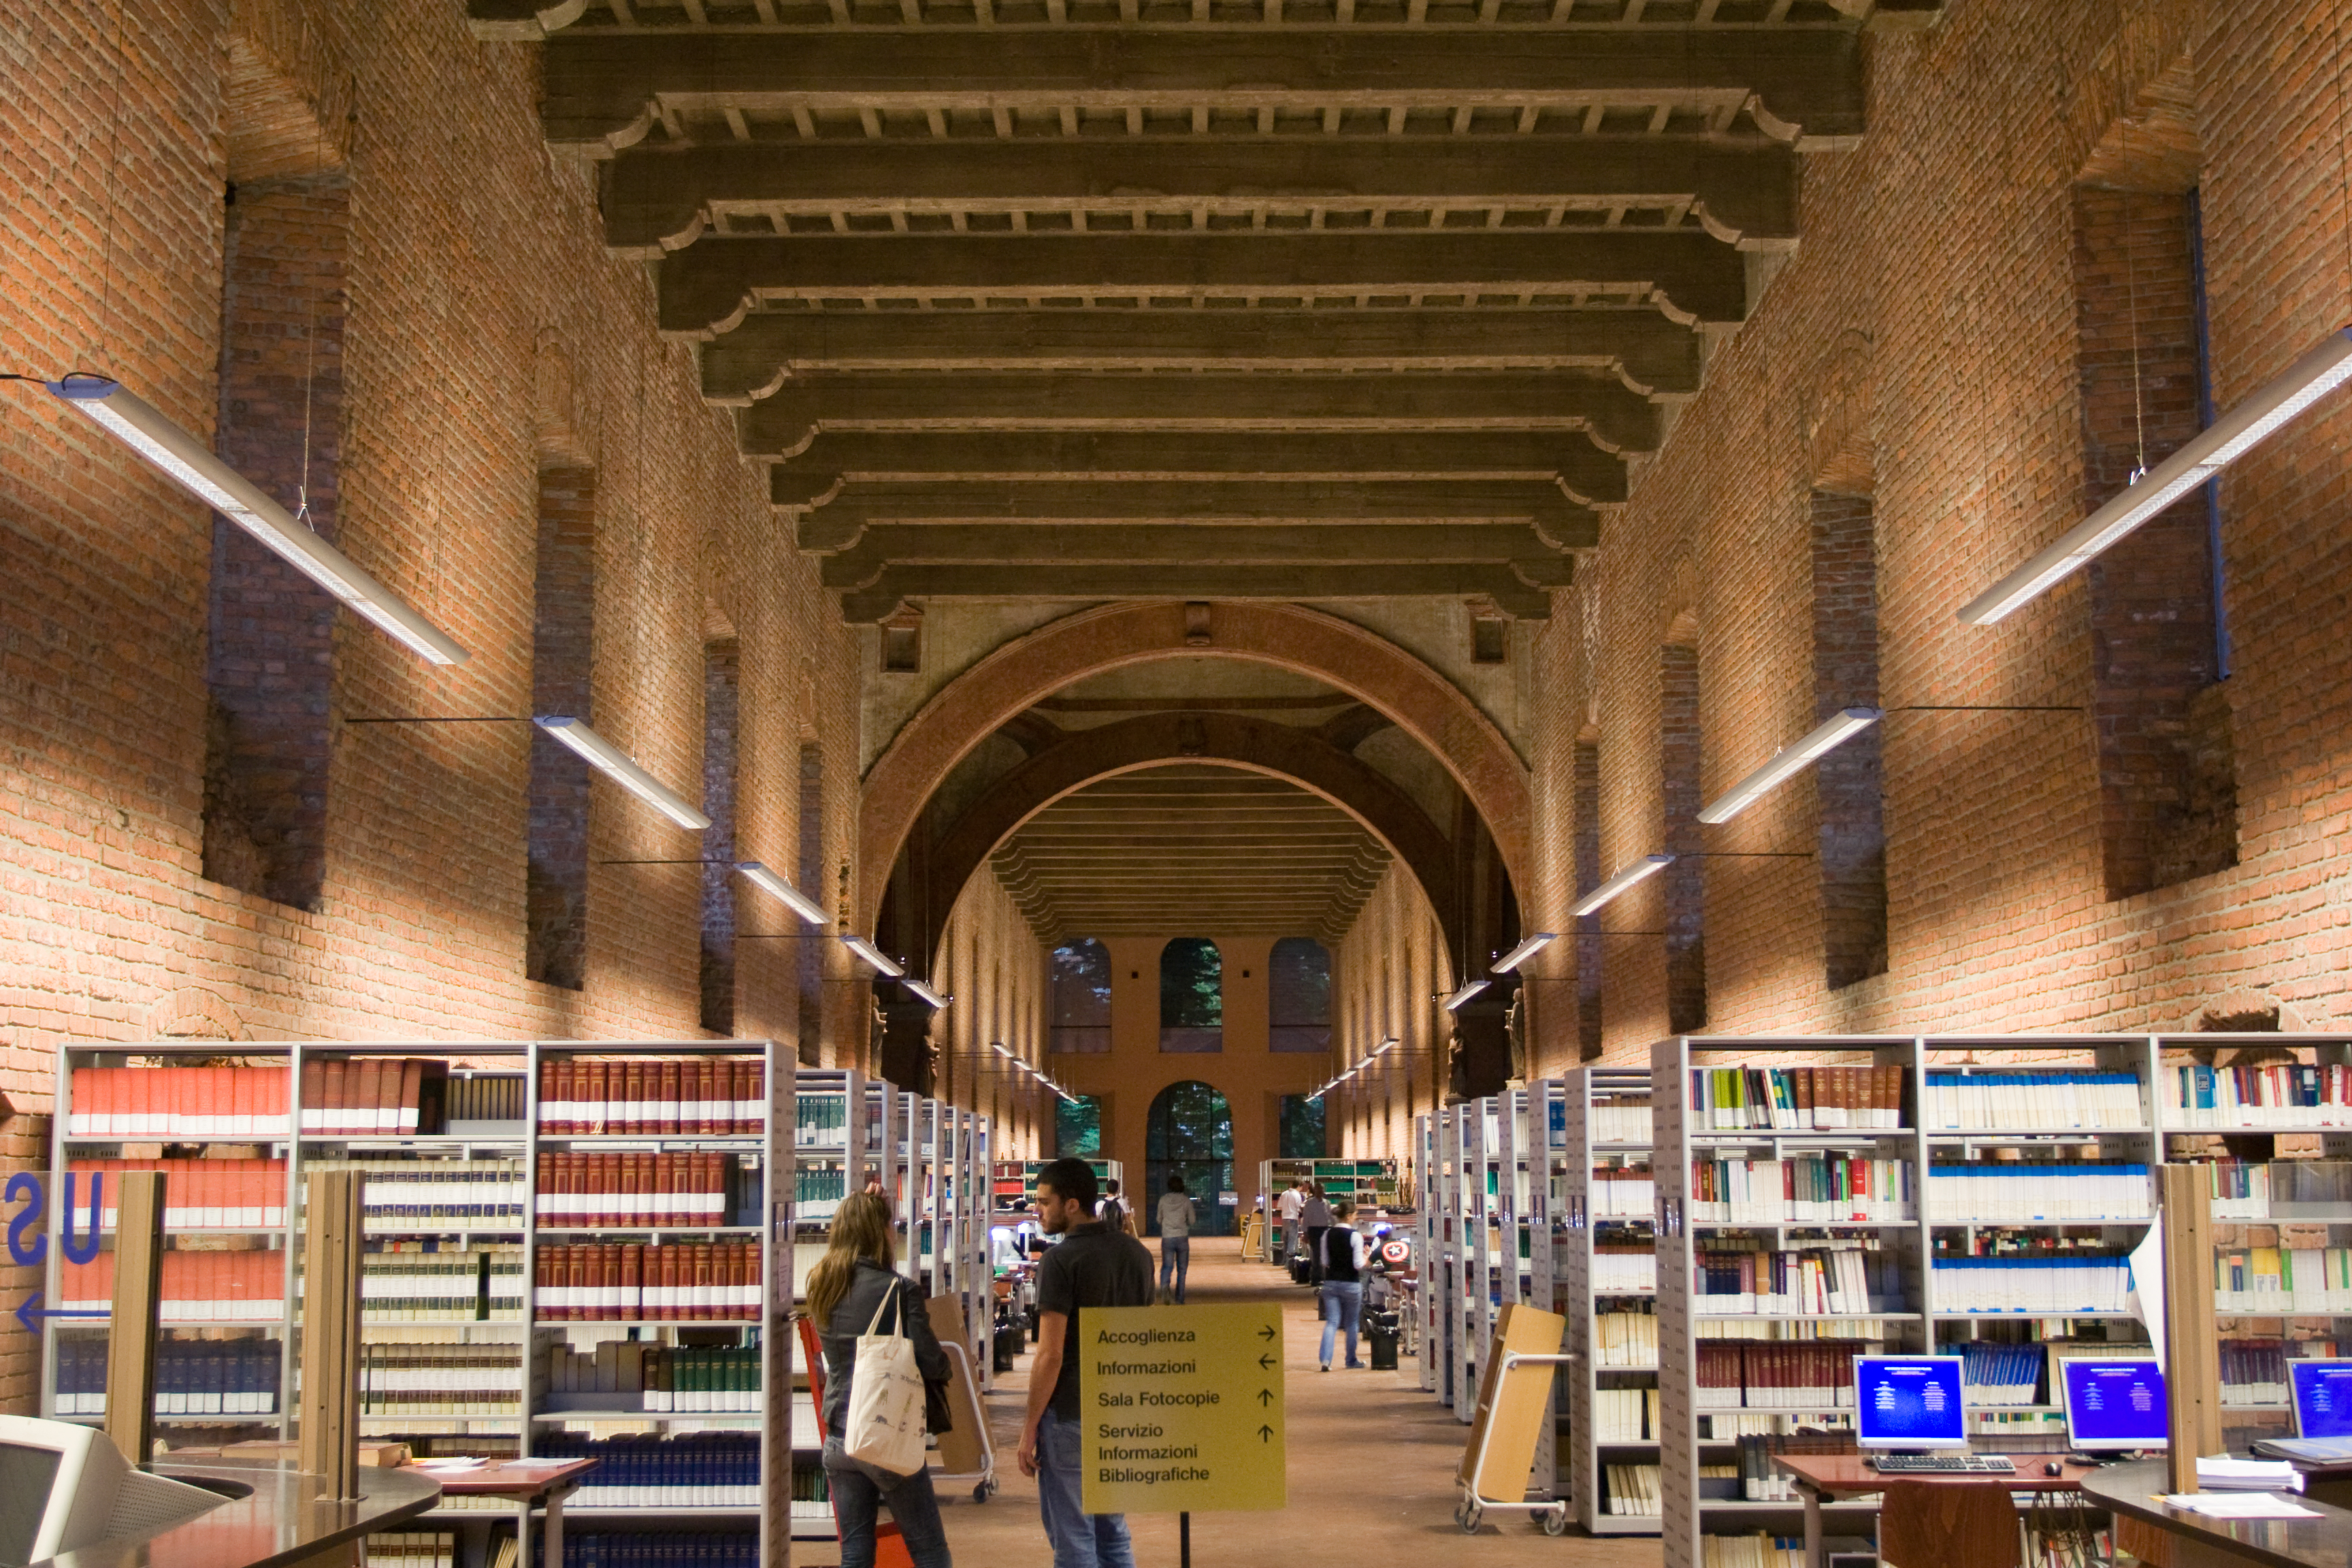 University of Milan central library of Law and Humanities